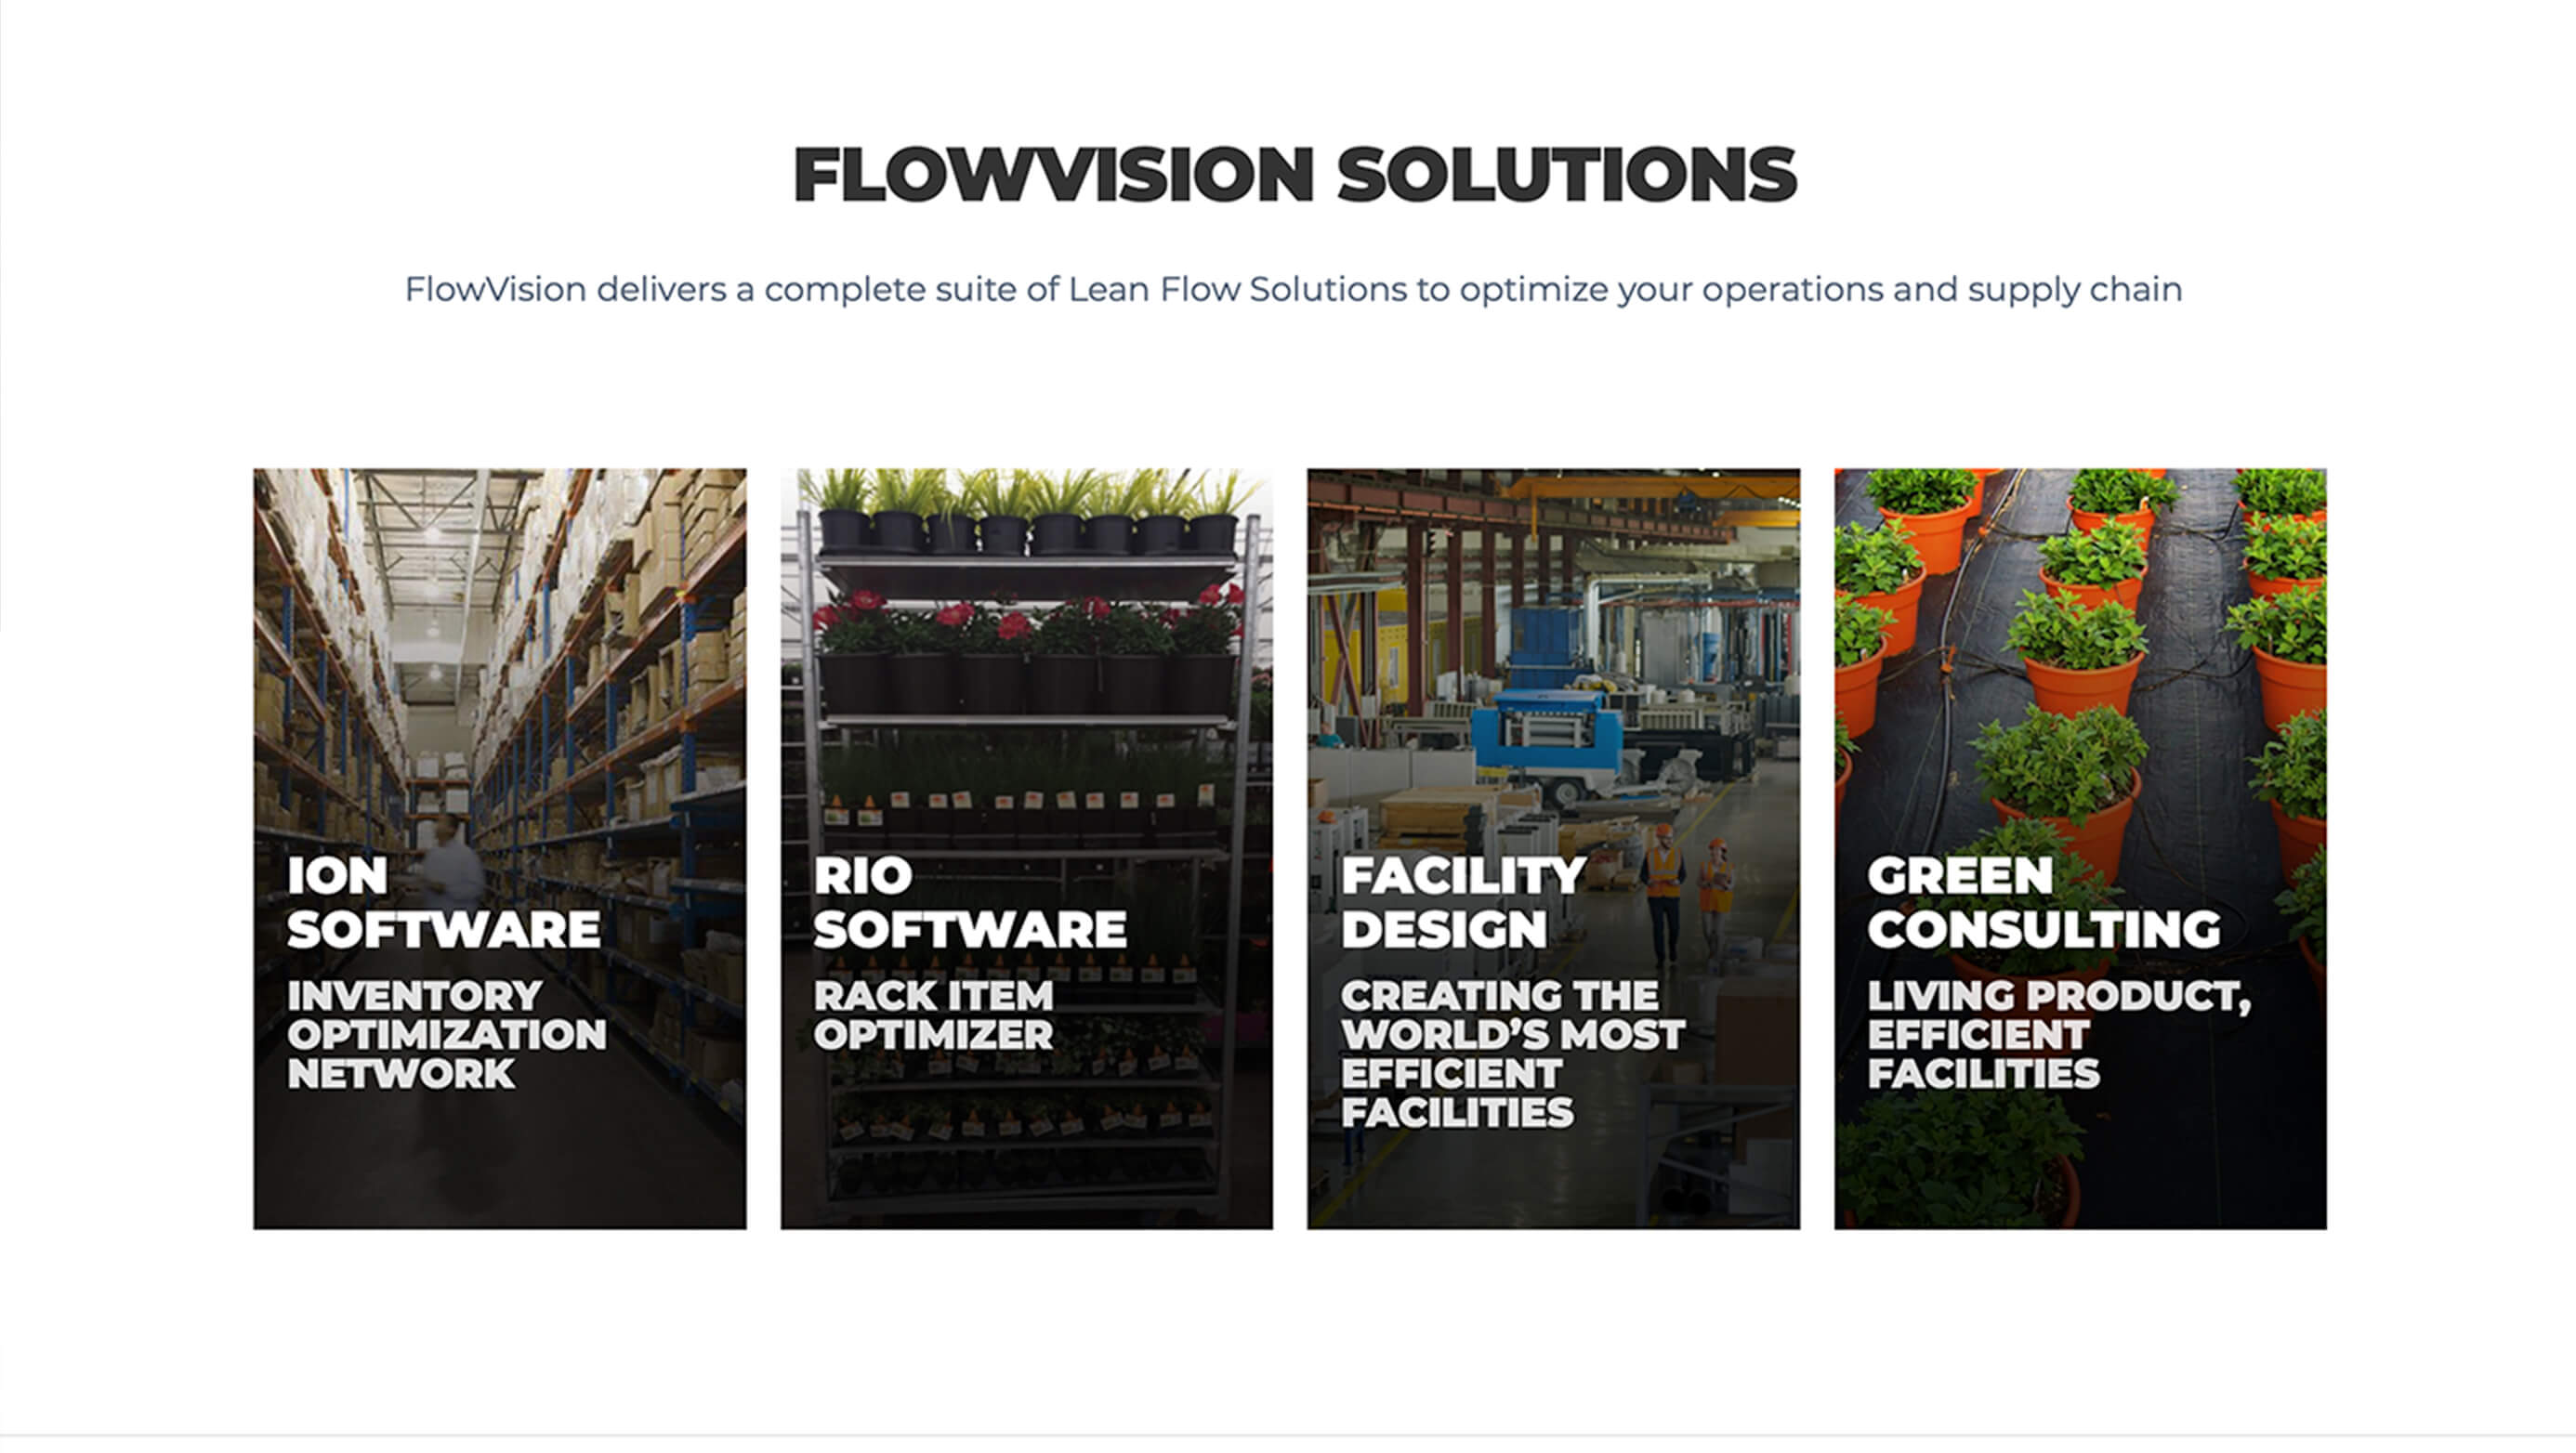 FlowVision Company | The Creative Momentum - Web Design & Digital Marketing